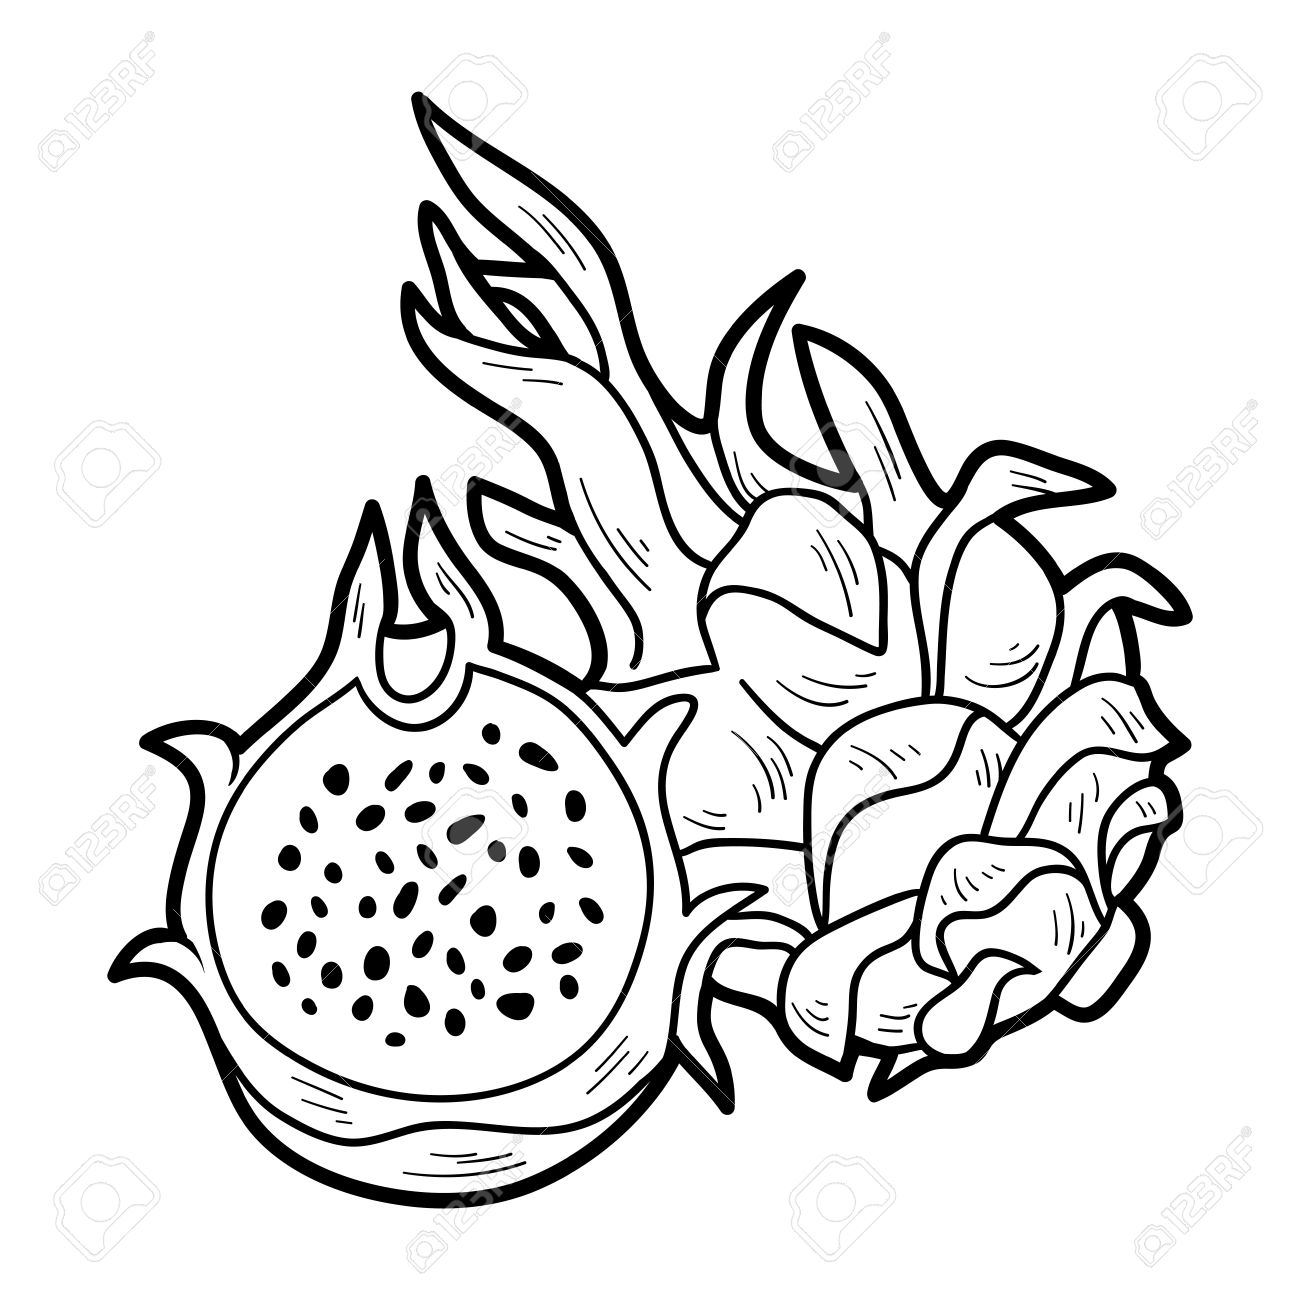 Coloring Book Game For Children Fruits And Vegetables Dragon Fruit Stock Vector